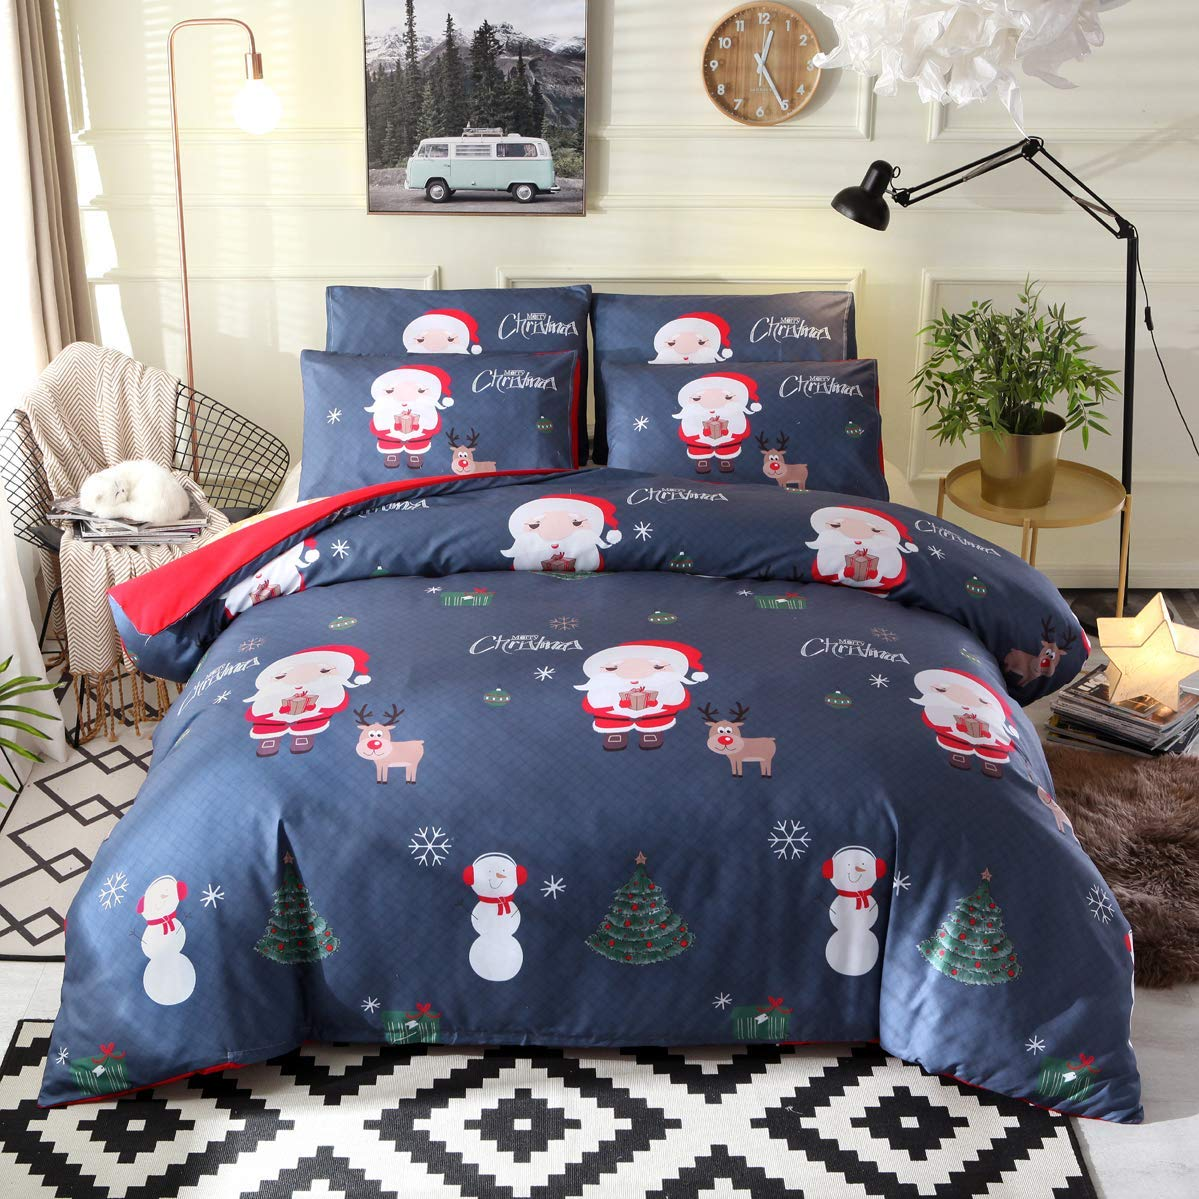 Nattey Christmas Duvet Cover Set - Buy Christmas Duvet Covers